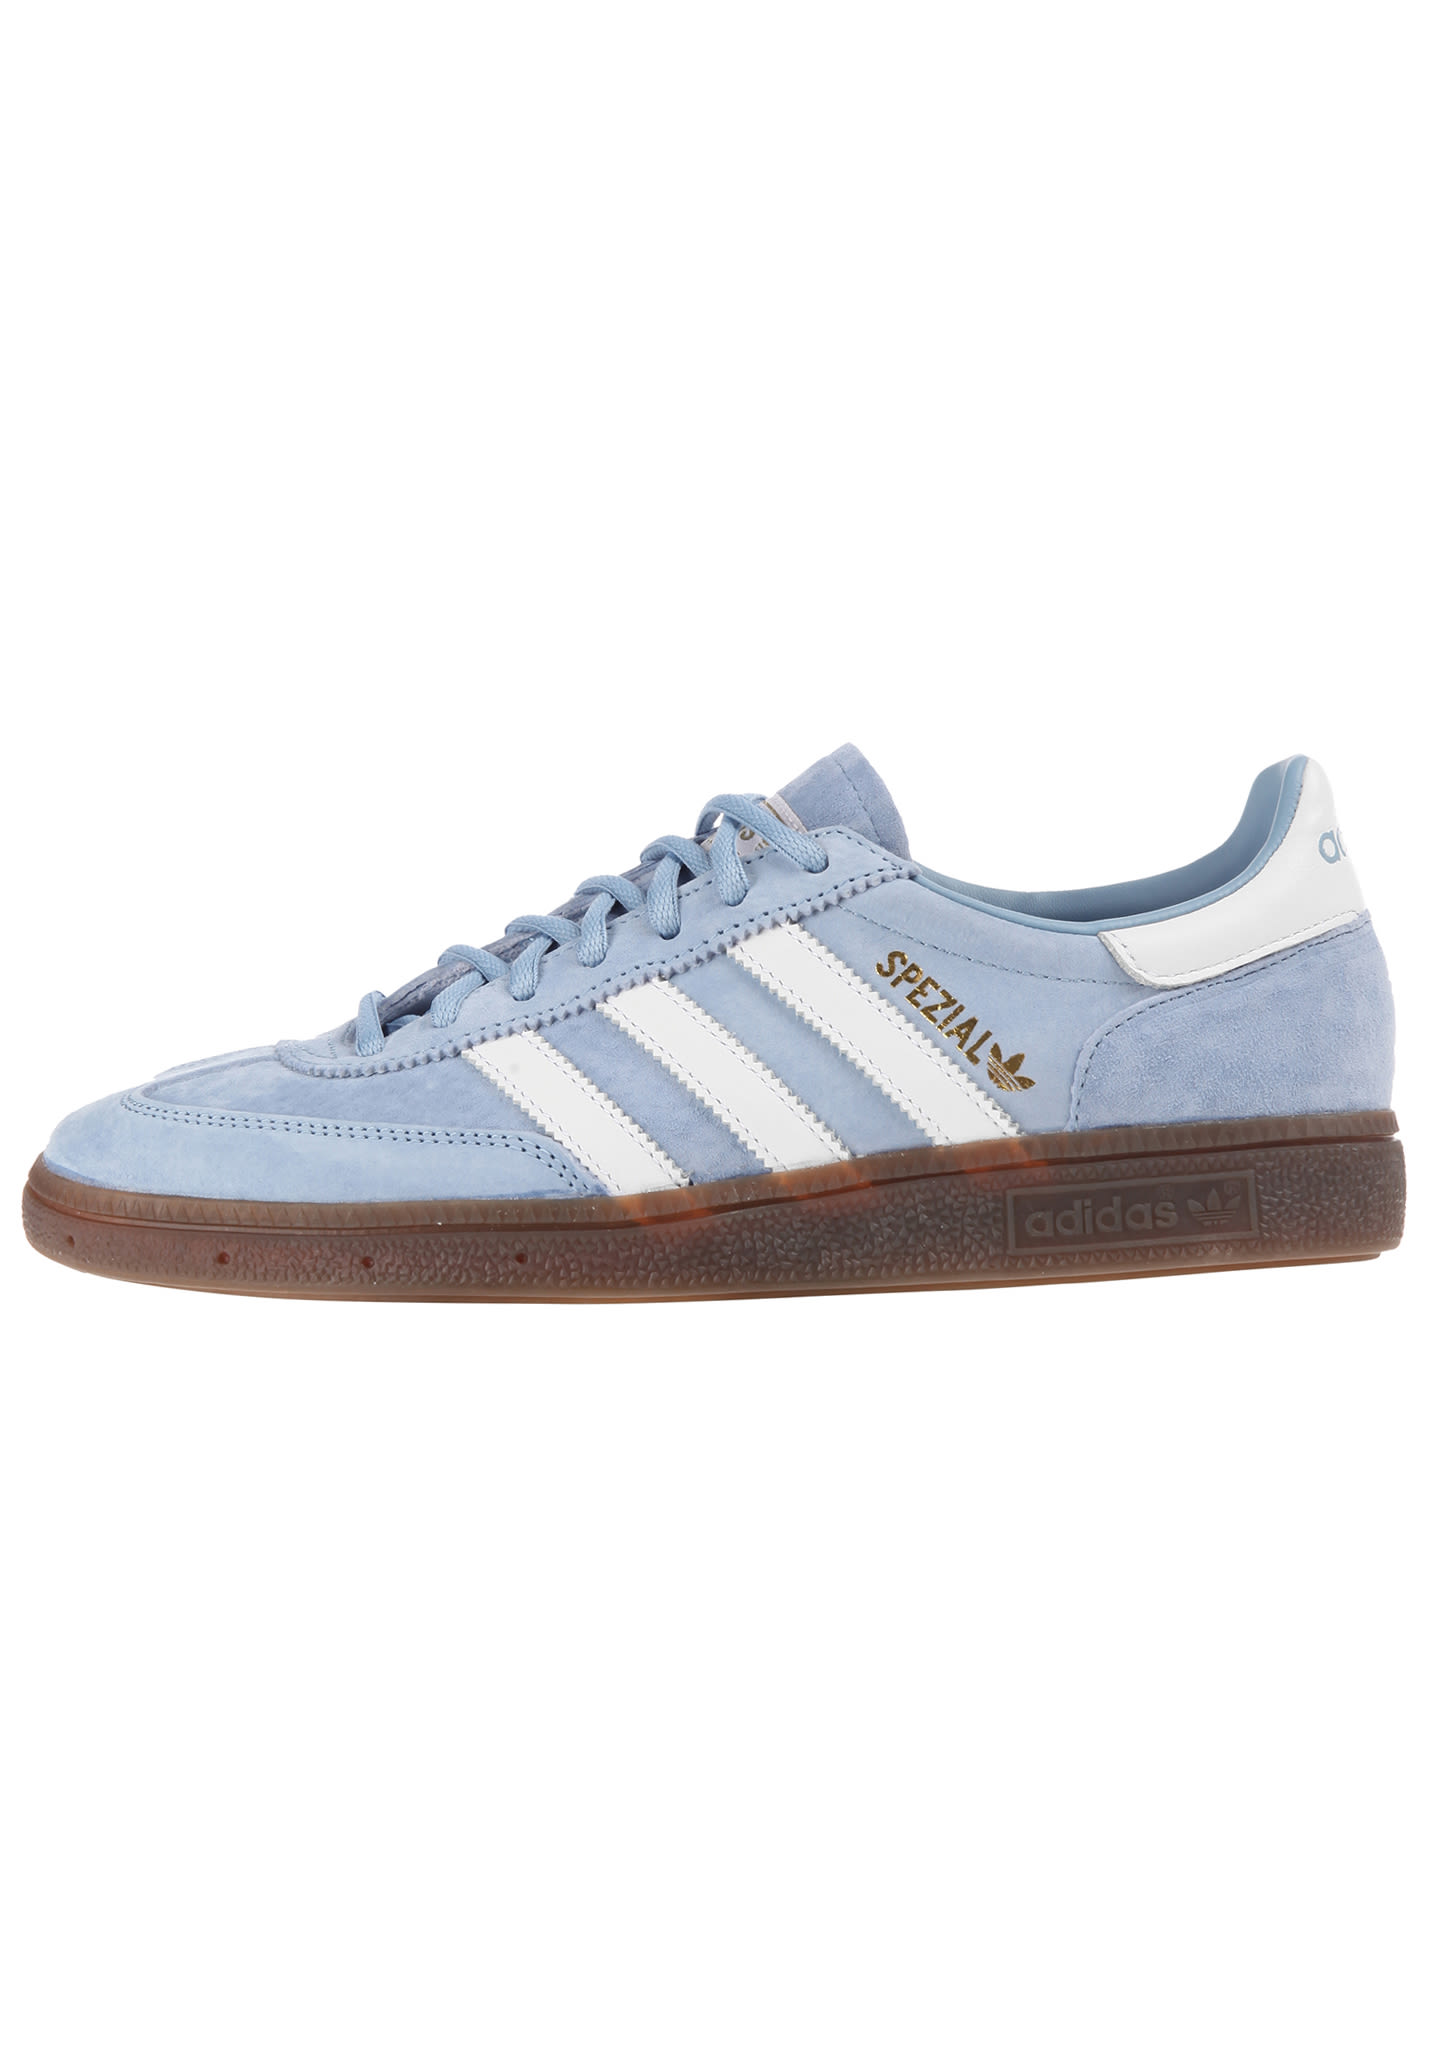 reputable site 126b0 ff890 adidas Originals Handball Spezial - Sneaker für Herren - Blau - Planet  Sports